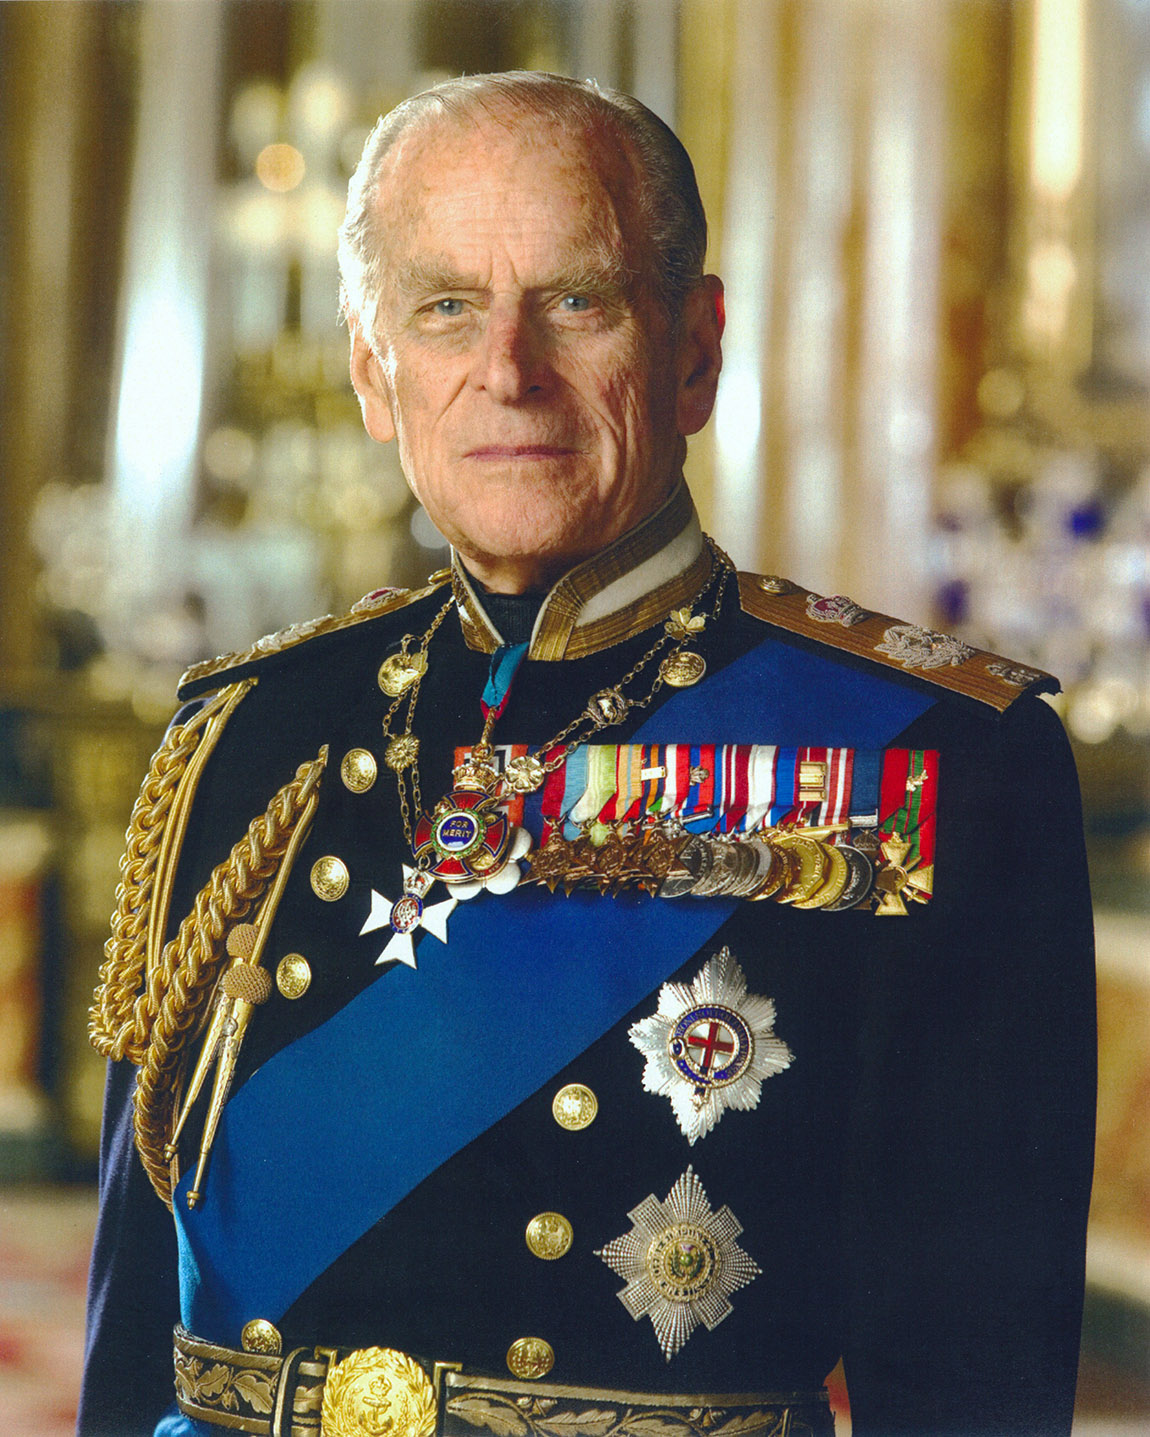 HRH The Duke of Edinburgh